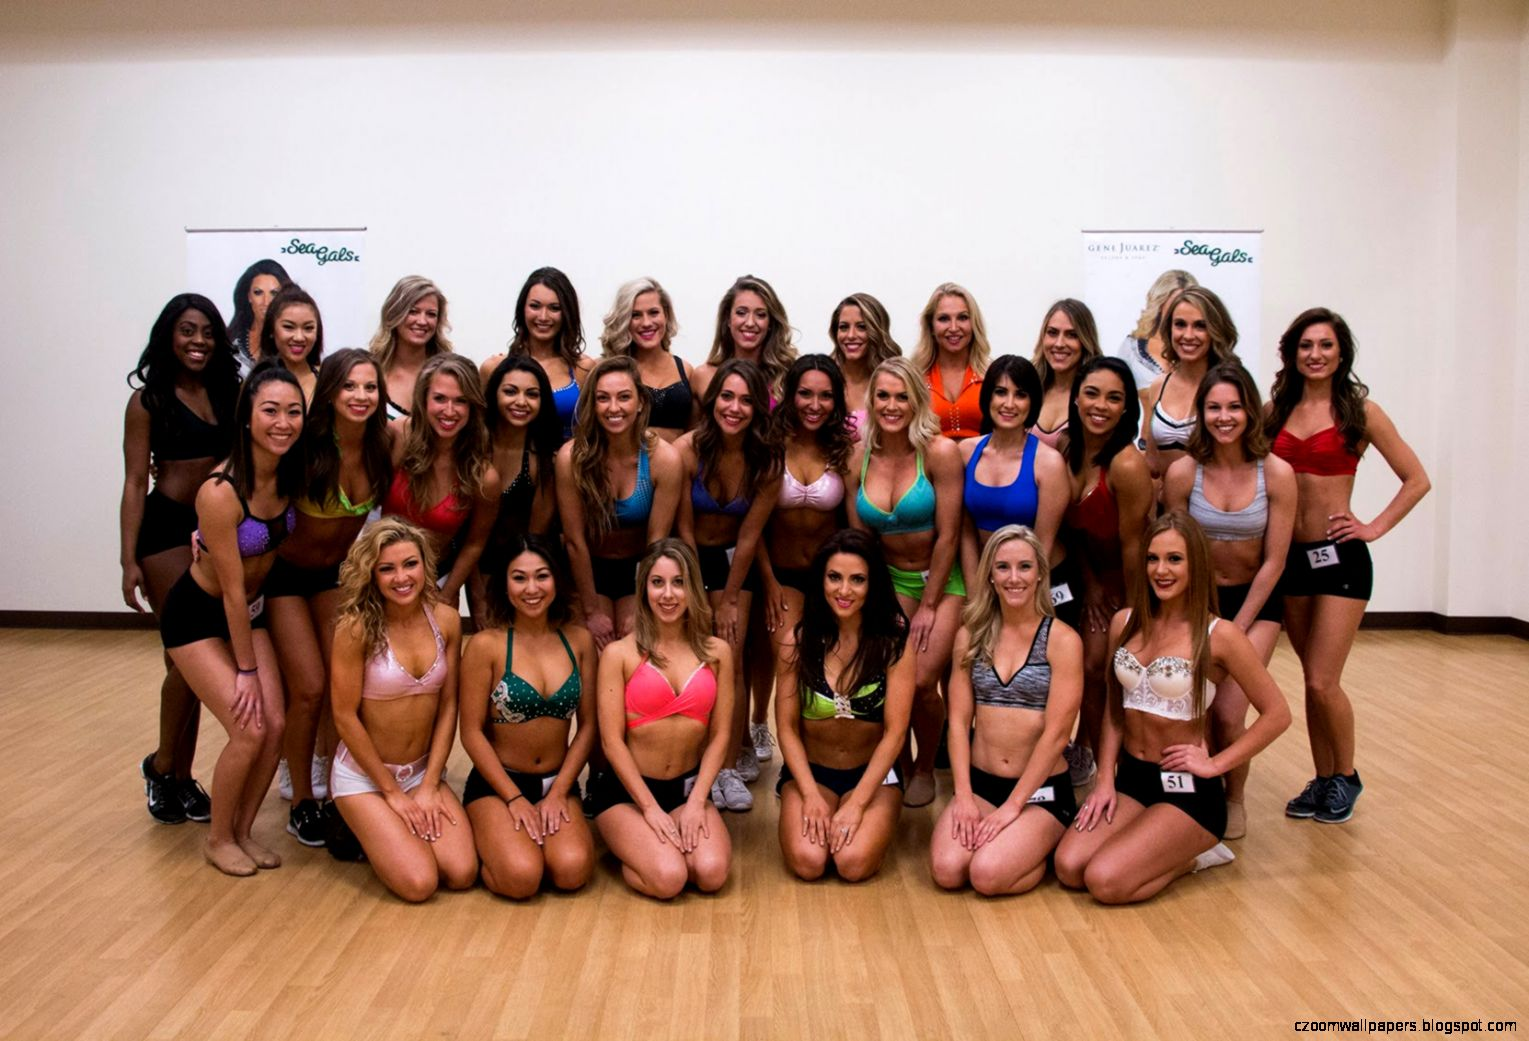 Seattle Seahawks Cheerleaders Calendar